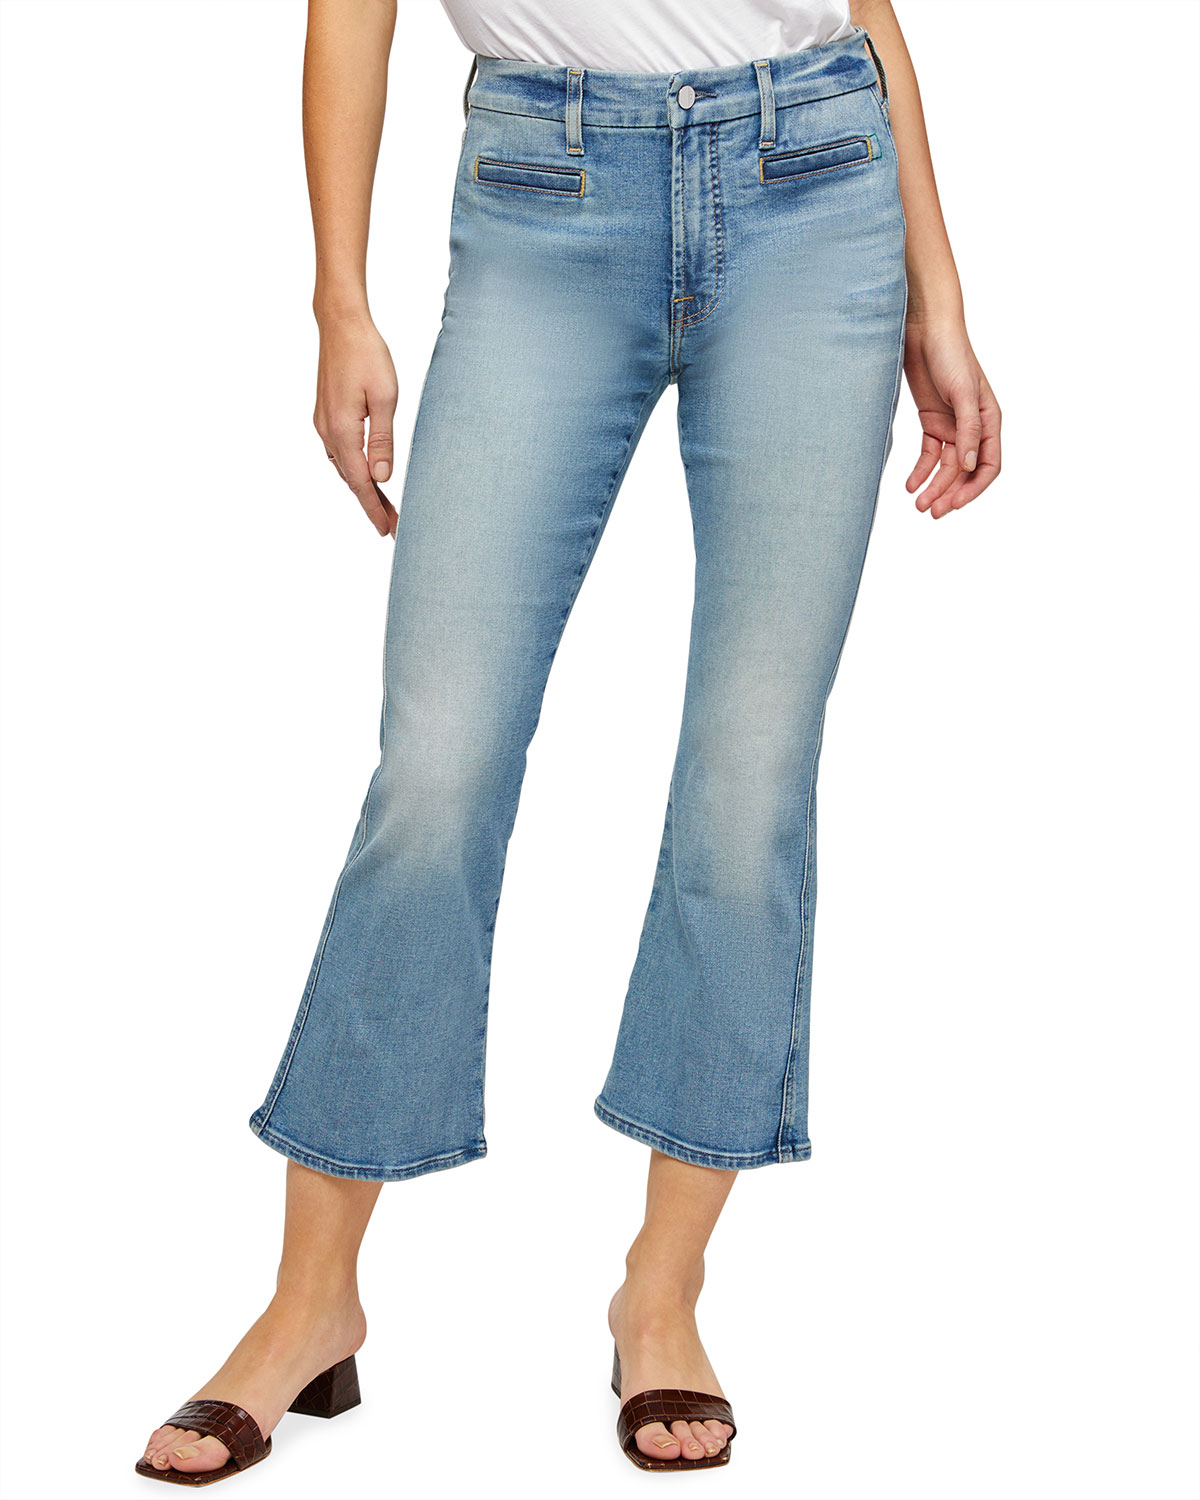 Cropped Kick Flare Jeans with Welt Pockets